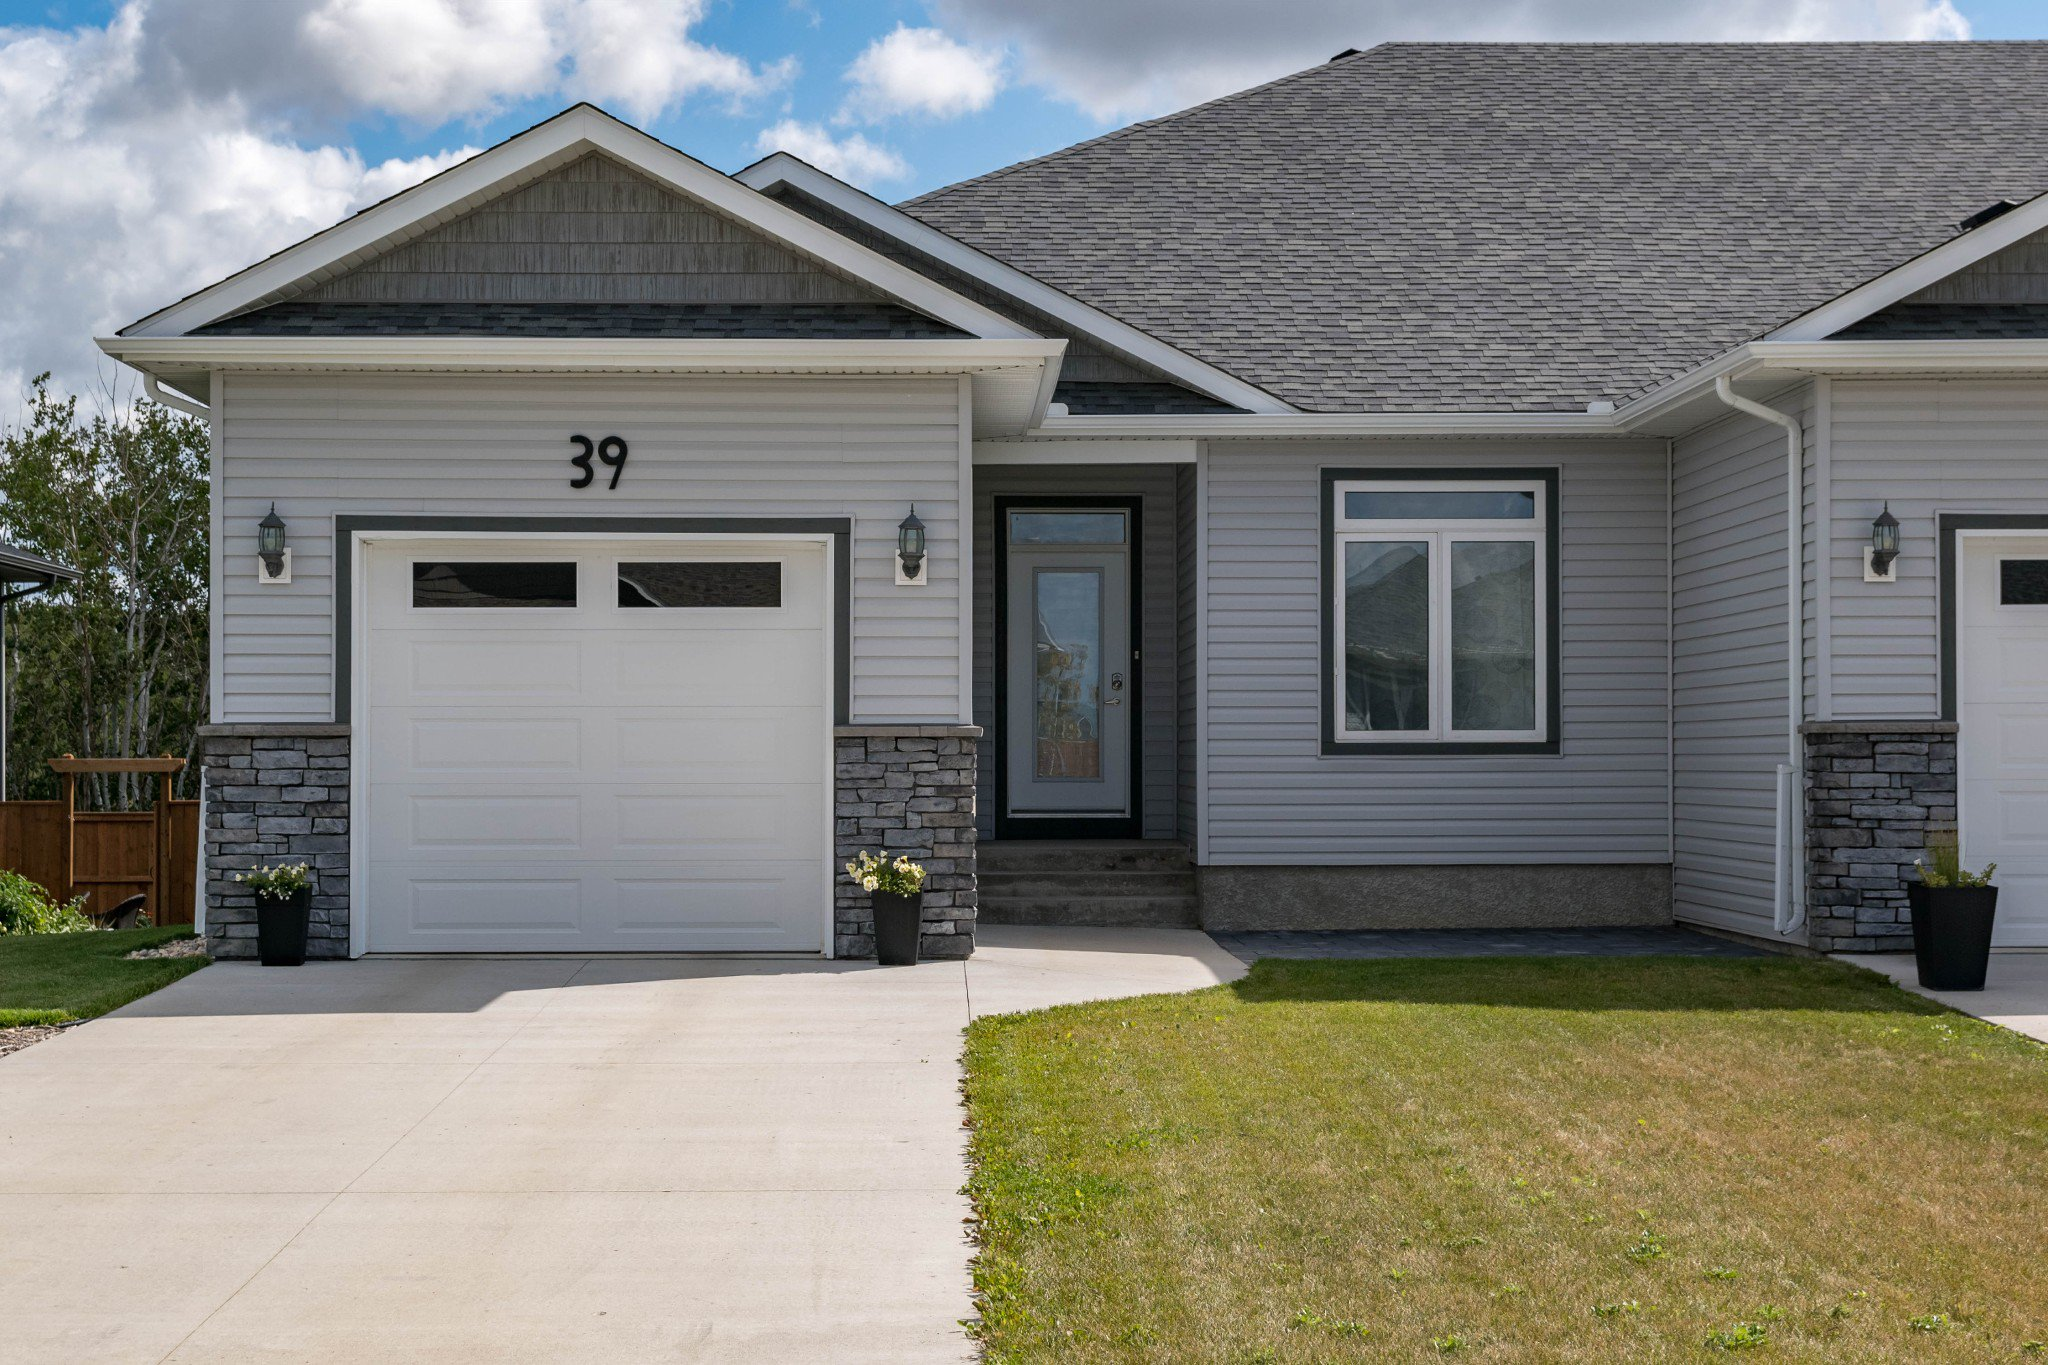 GREAT VALUE! 1407 sf 2+ bedroom side attached raised bungalow backing onto green space in Town of Oakbank. Oversized 24.6x13.6 insulated & drywalled AT1, concrete driveway.